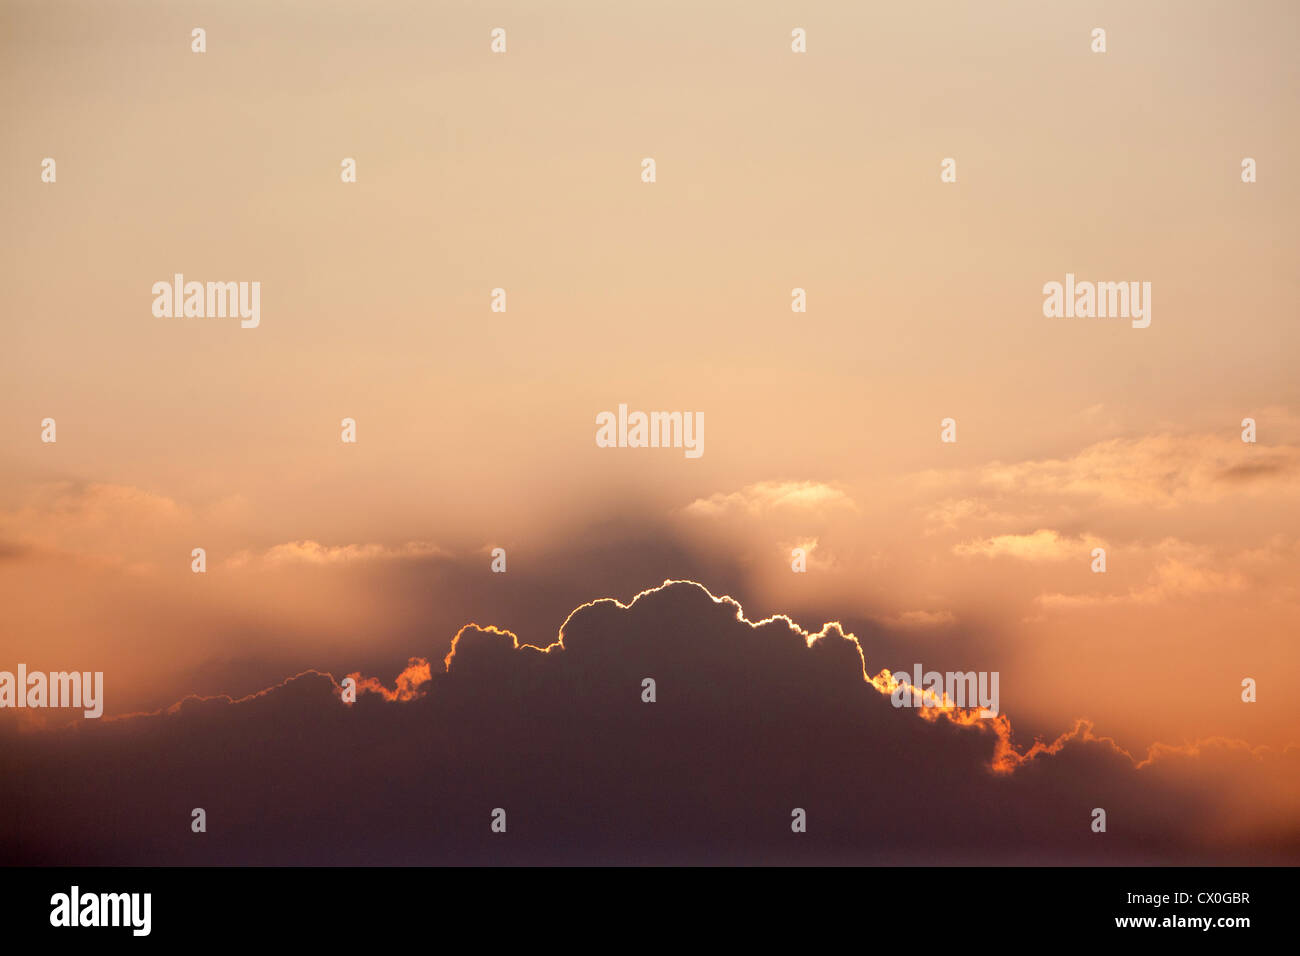 Silver lining as the sun disappears behind a line of clouds - Stock Image